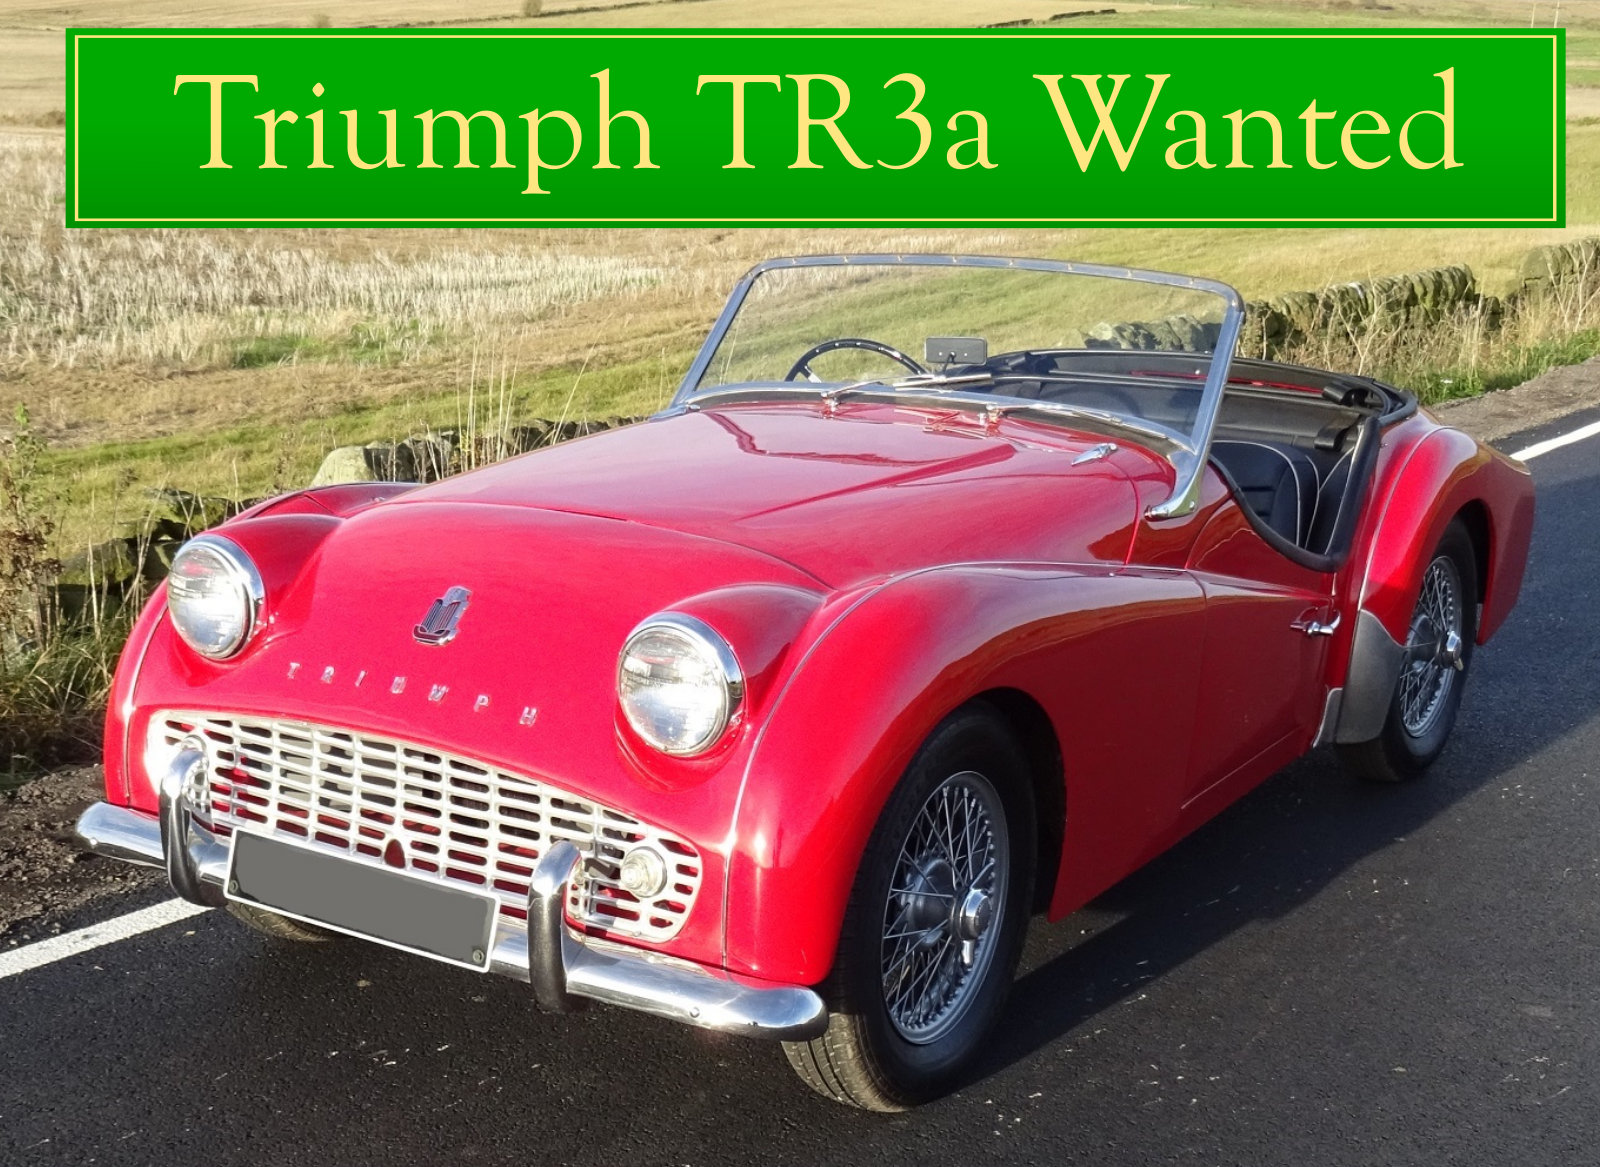 1955  TRIUMPH TR2 WANTED, CLASSIC CARS WANTED, QUICK PAYMENT Wanted (picture 3 of 6)